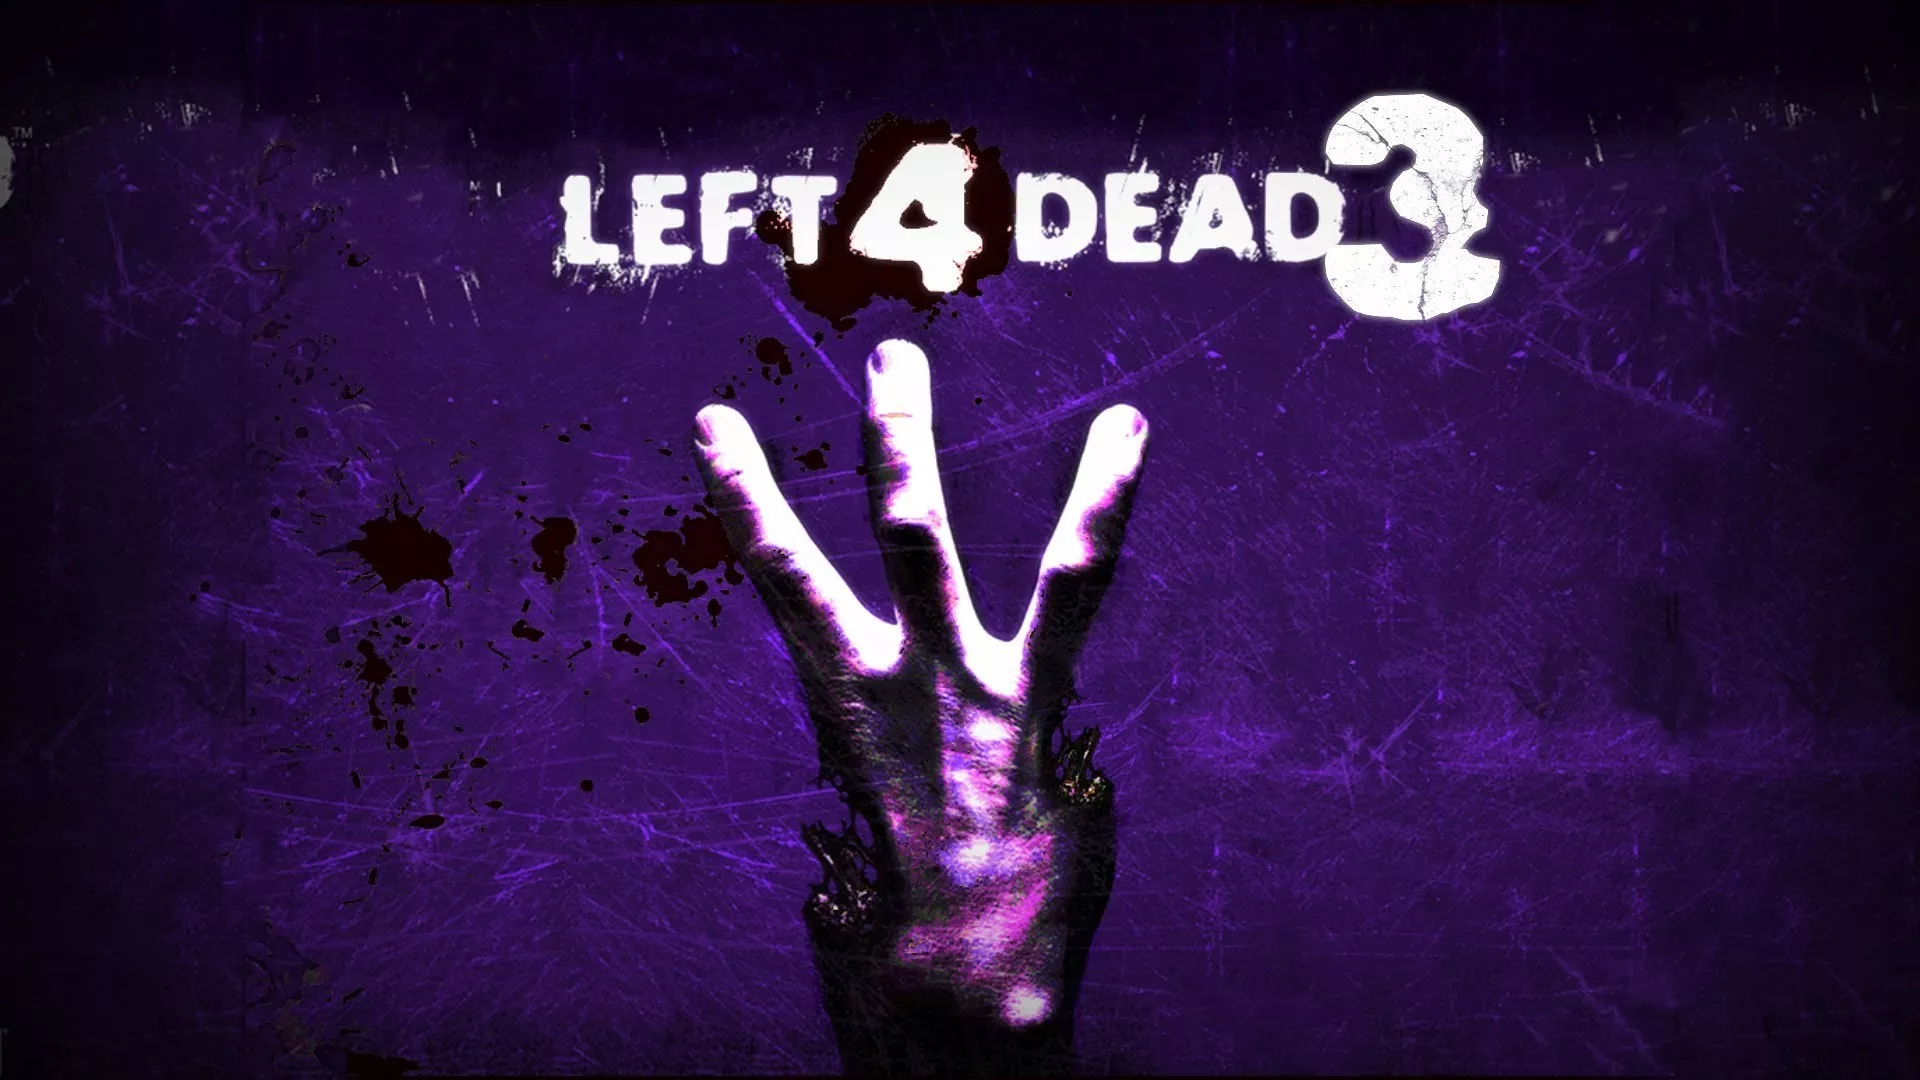 Left 4 Dead 3 Wallpaper